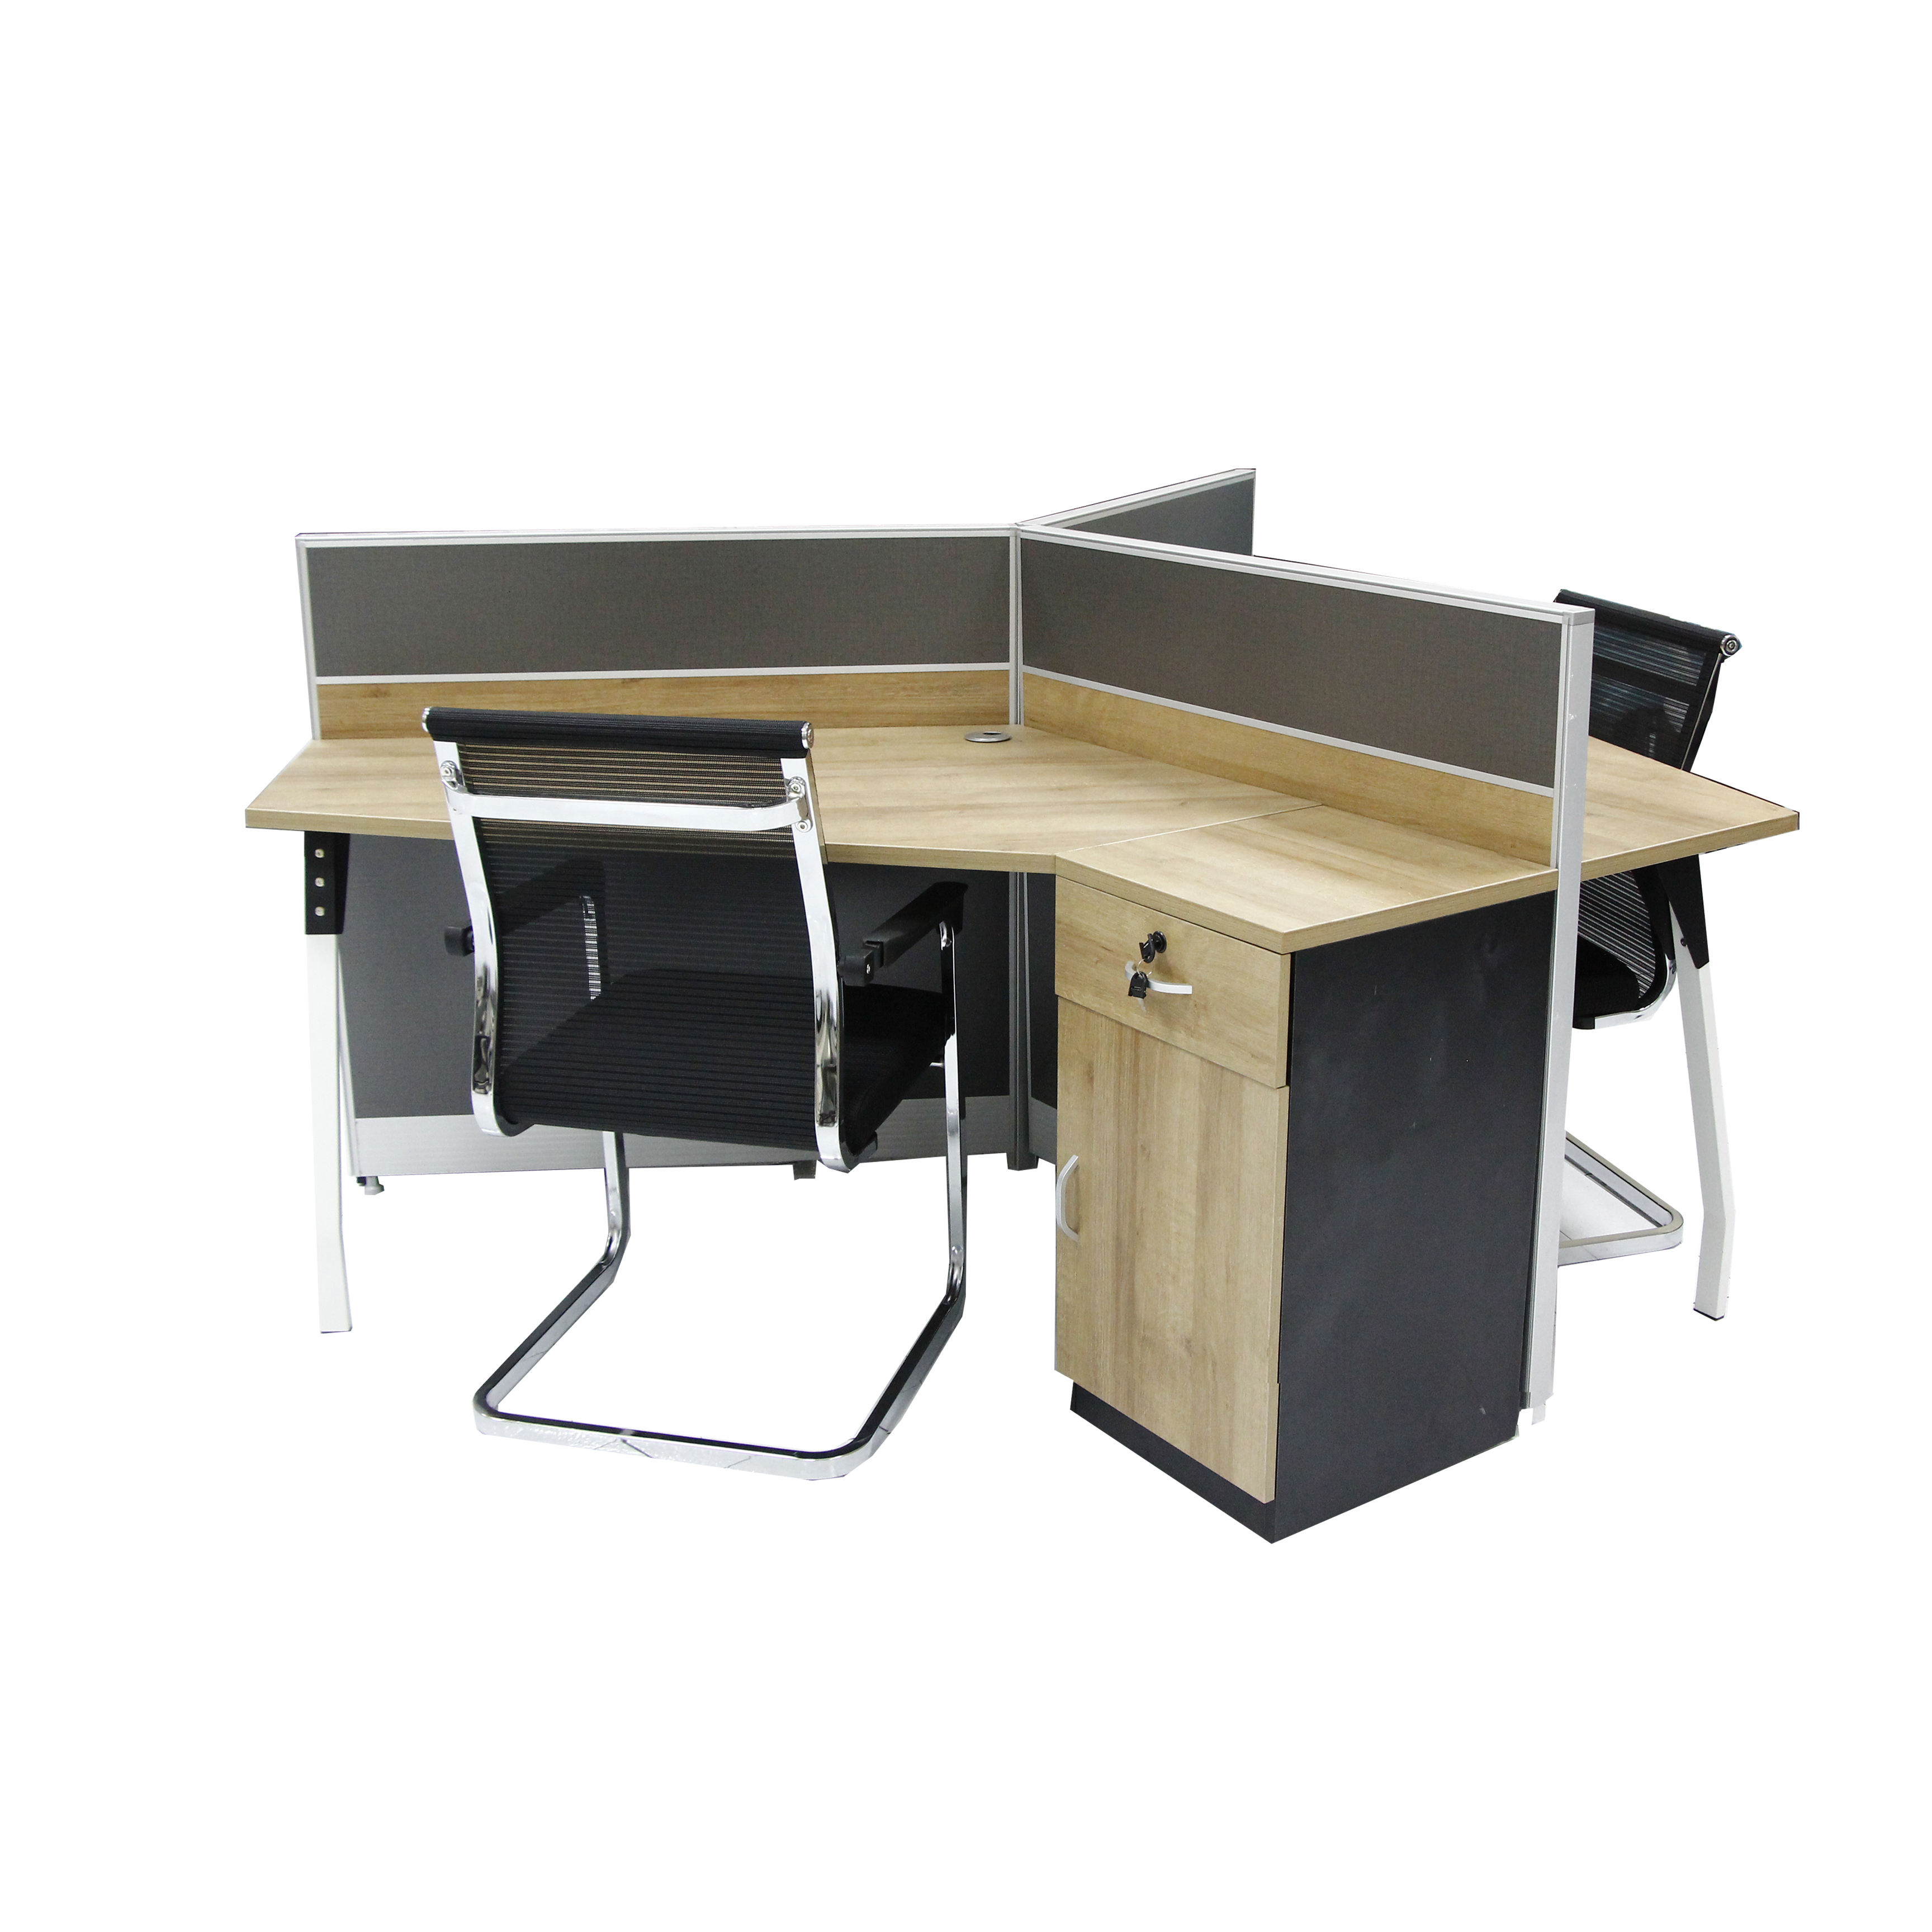 China Circular Desk, China Circular Desk Manufacturers and